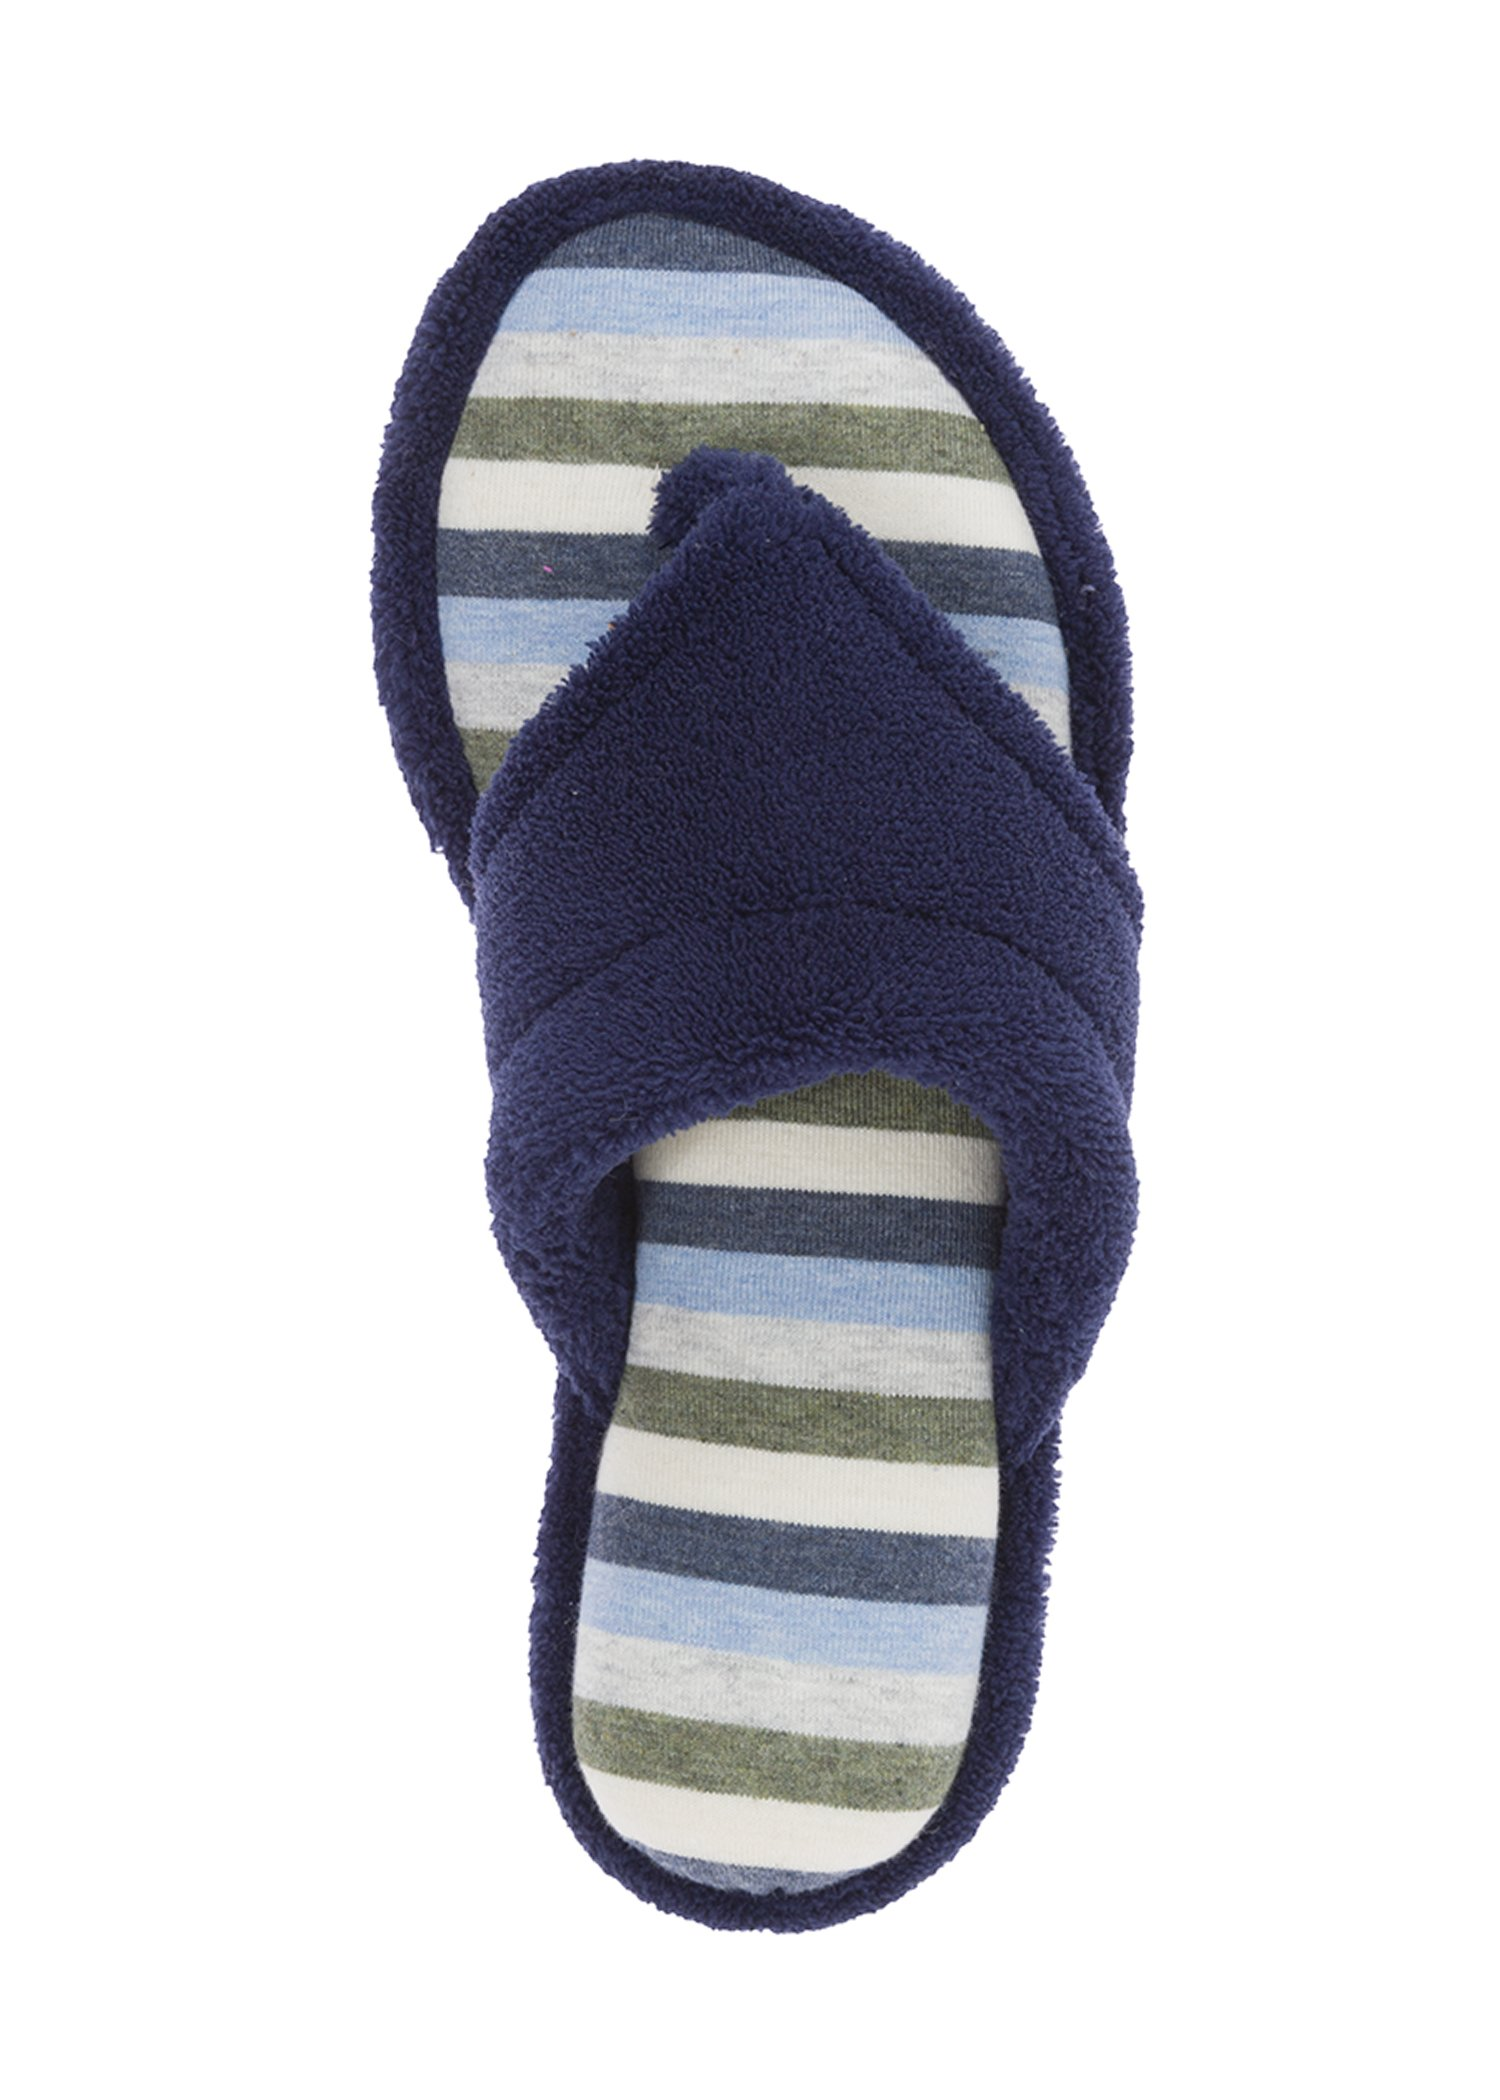 Dearfoams New Striped Women's Thong Slippers (Large, Peacoat)